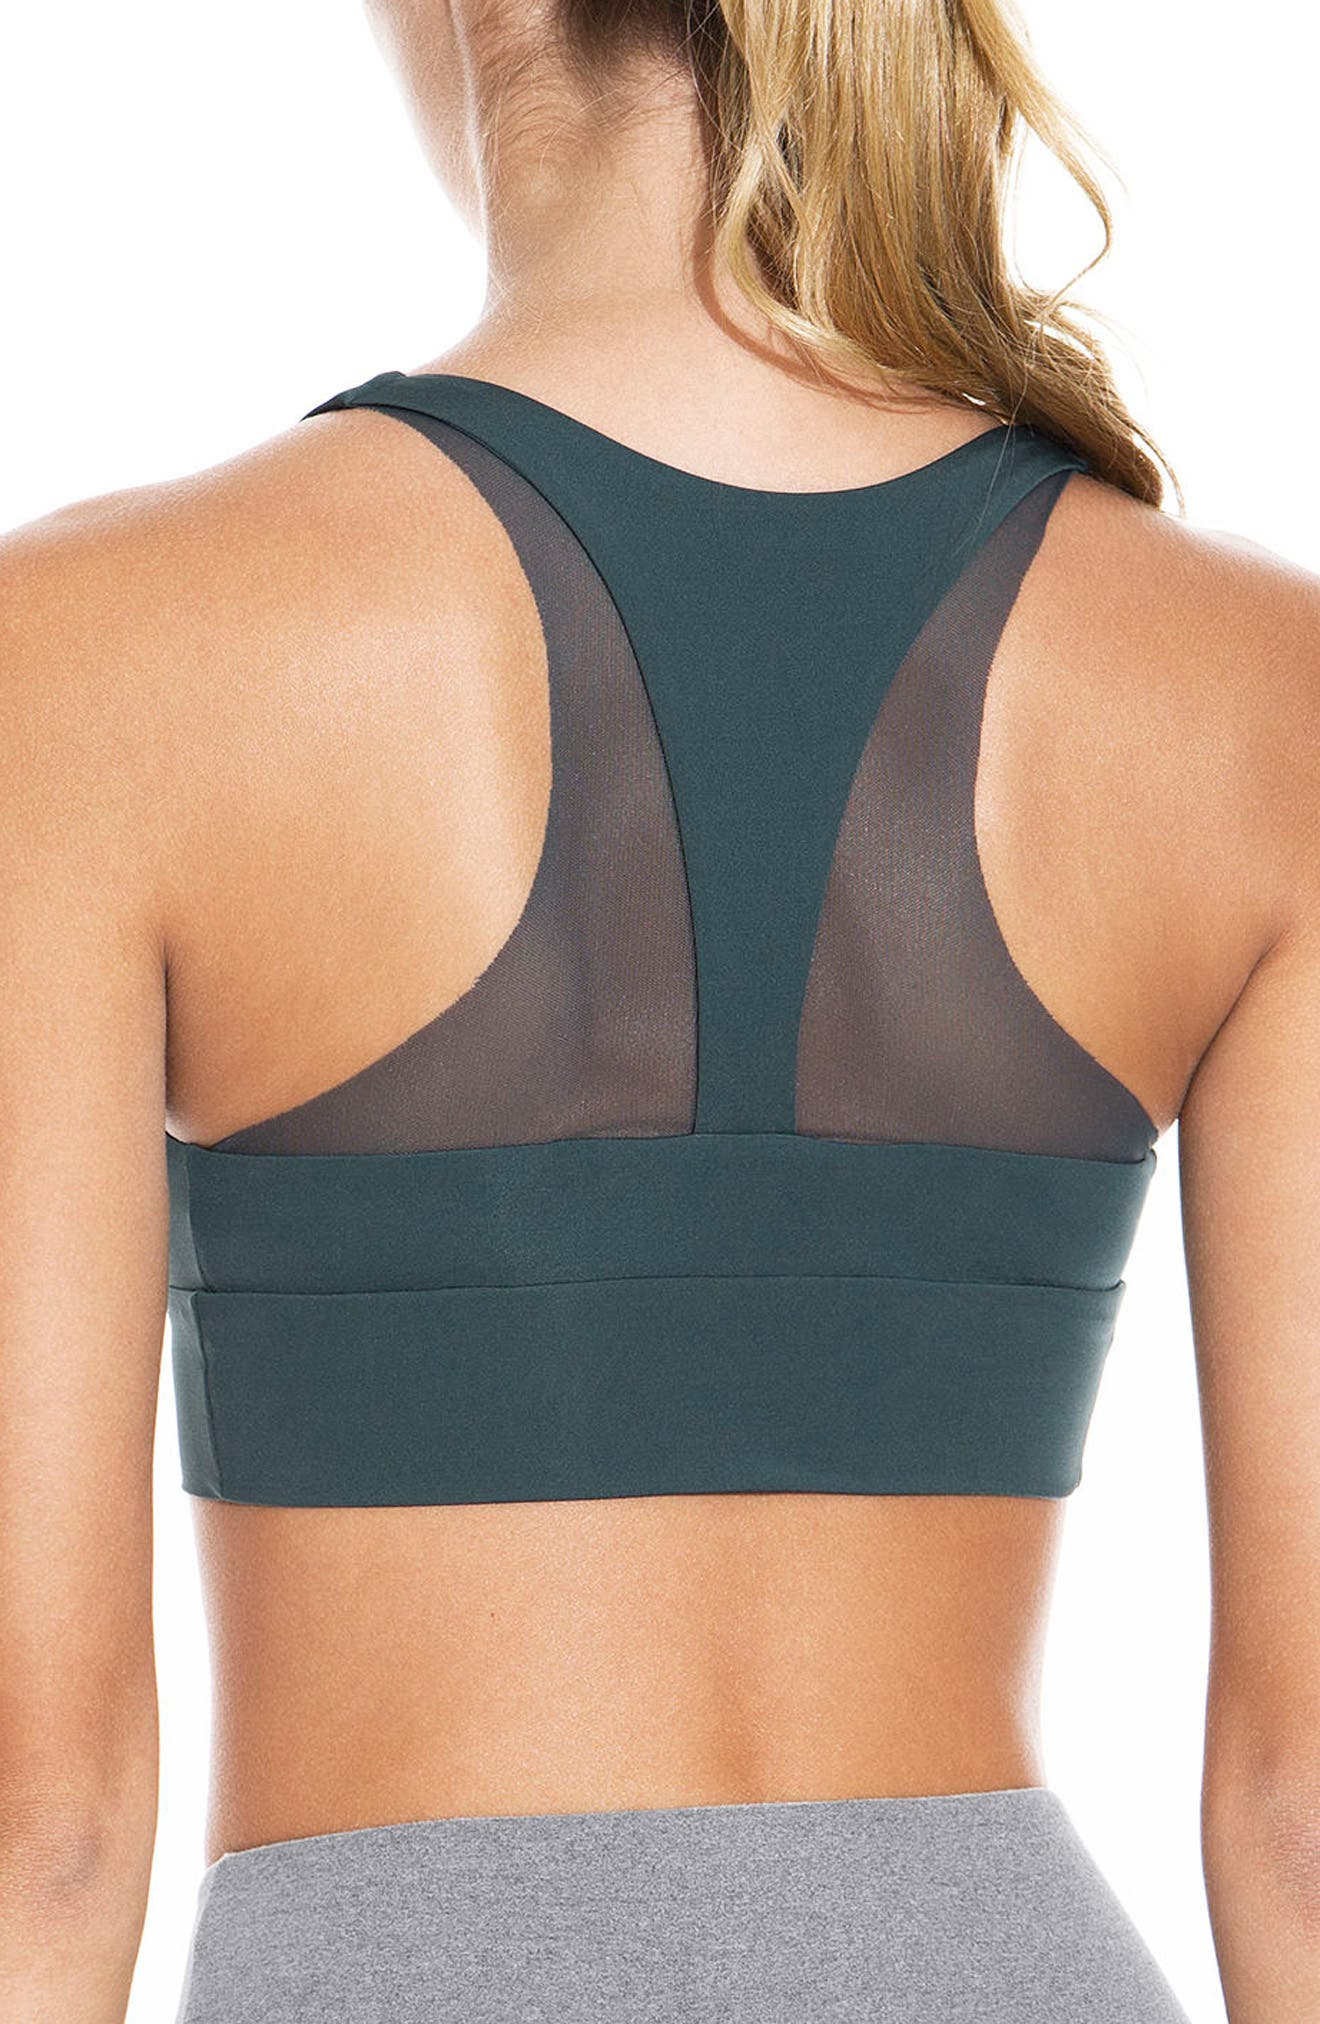 Whisper Tourmaline Sports Bra,                             Alternate thumbnail 2, color,                             301